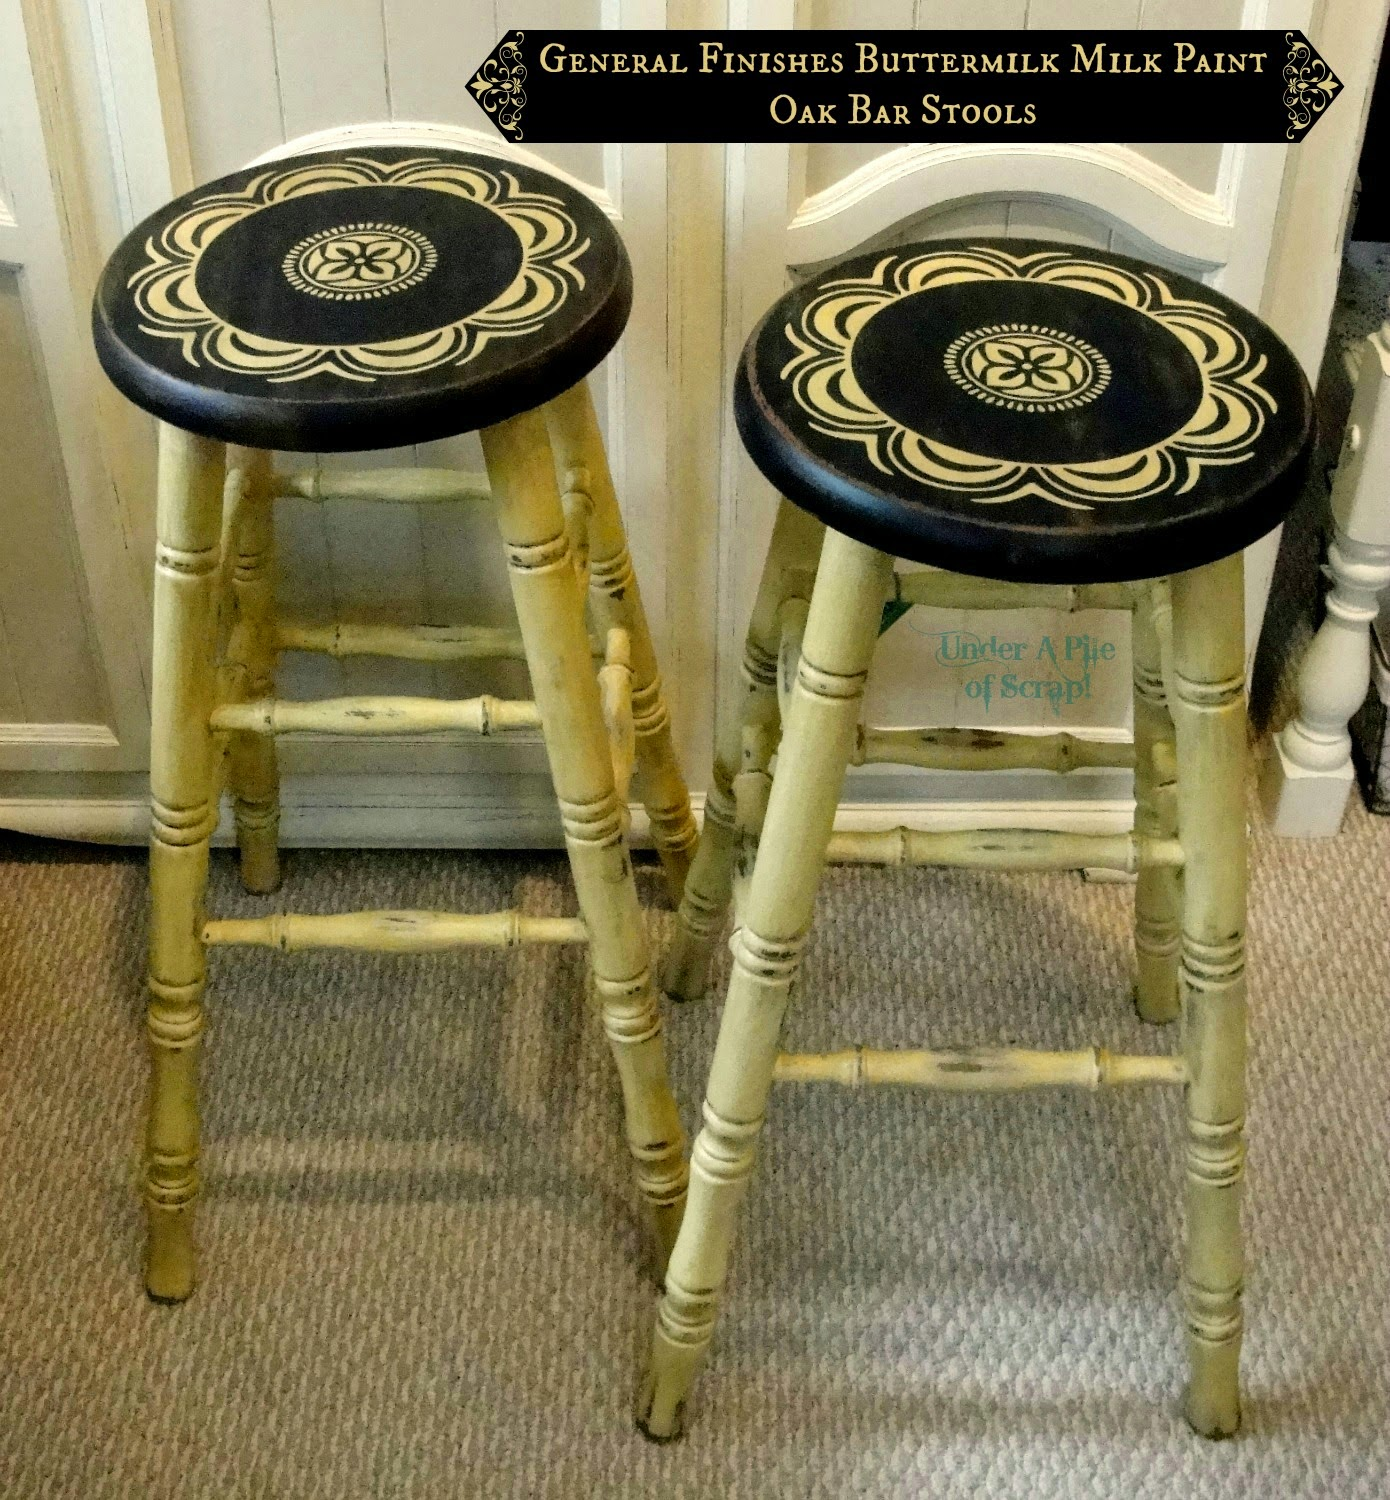 room decor, Farmhouse styles, bar stools, milk paint, rustic, shabby, diy, painted furniture, home decor